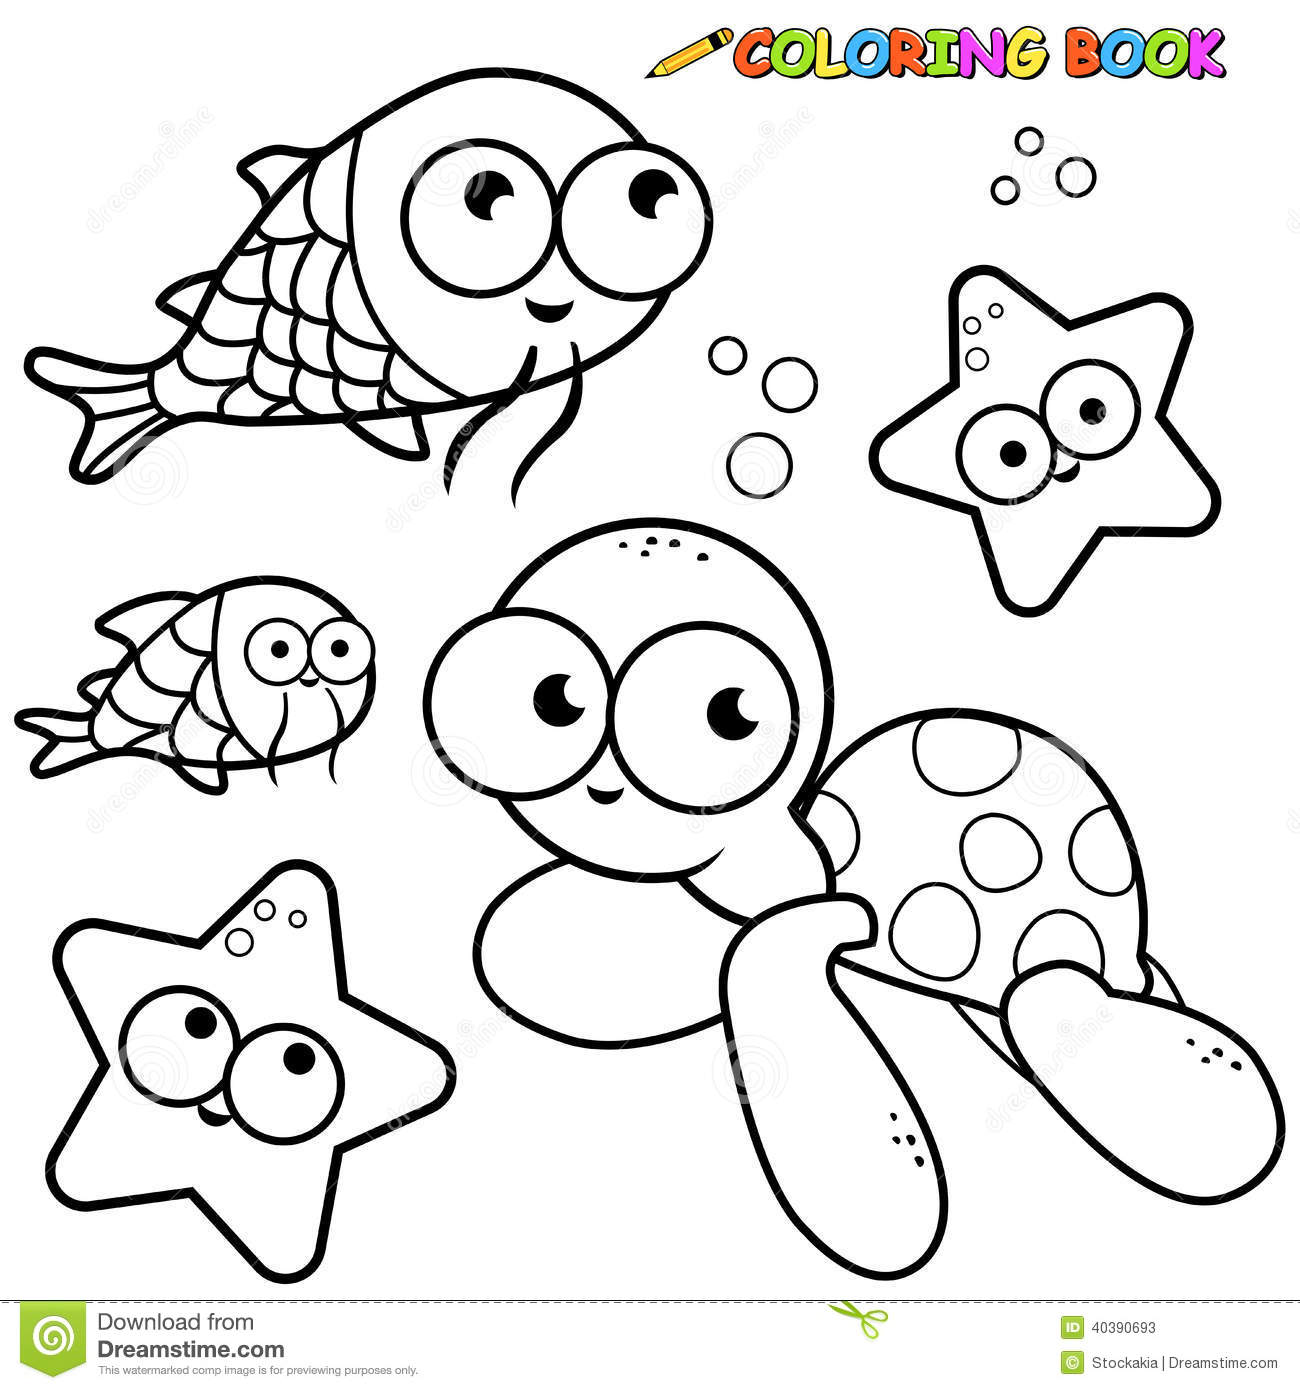 Coloring book outlines - Royalty Free Stock Photo Download Coloring Book